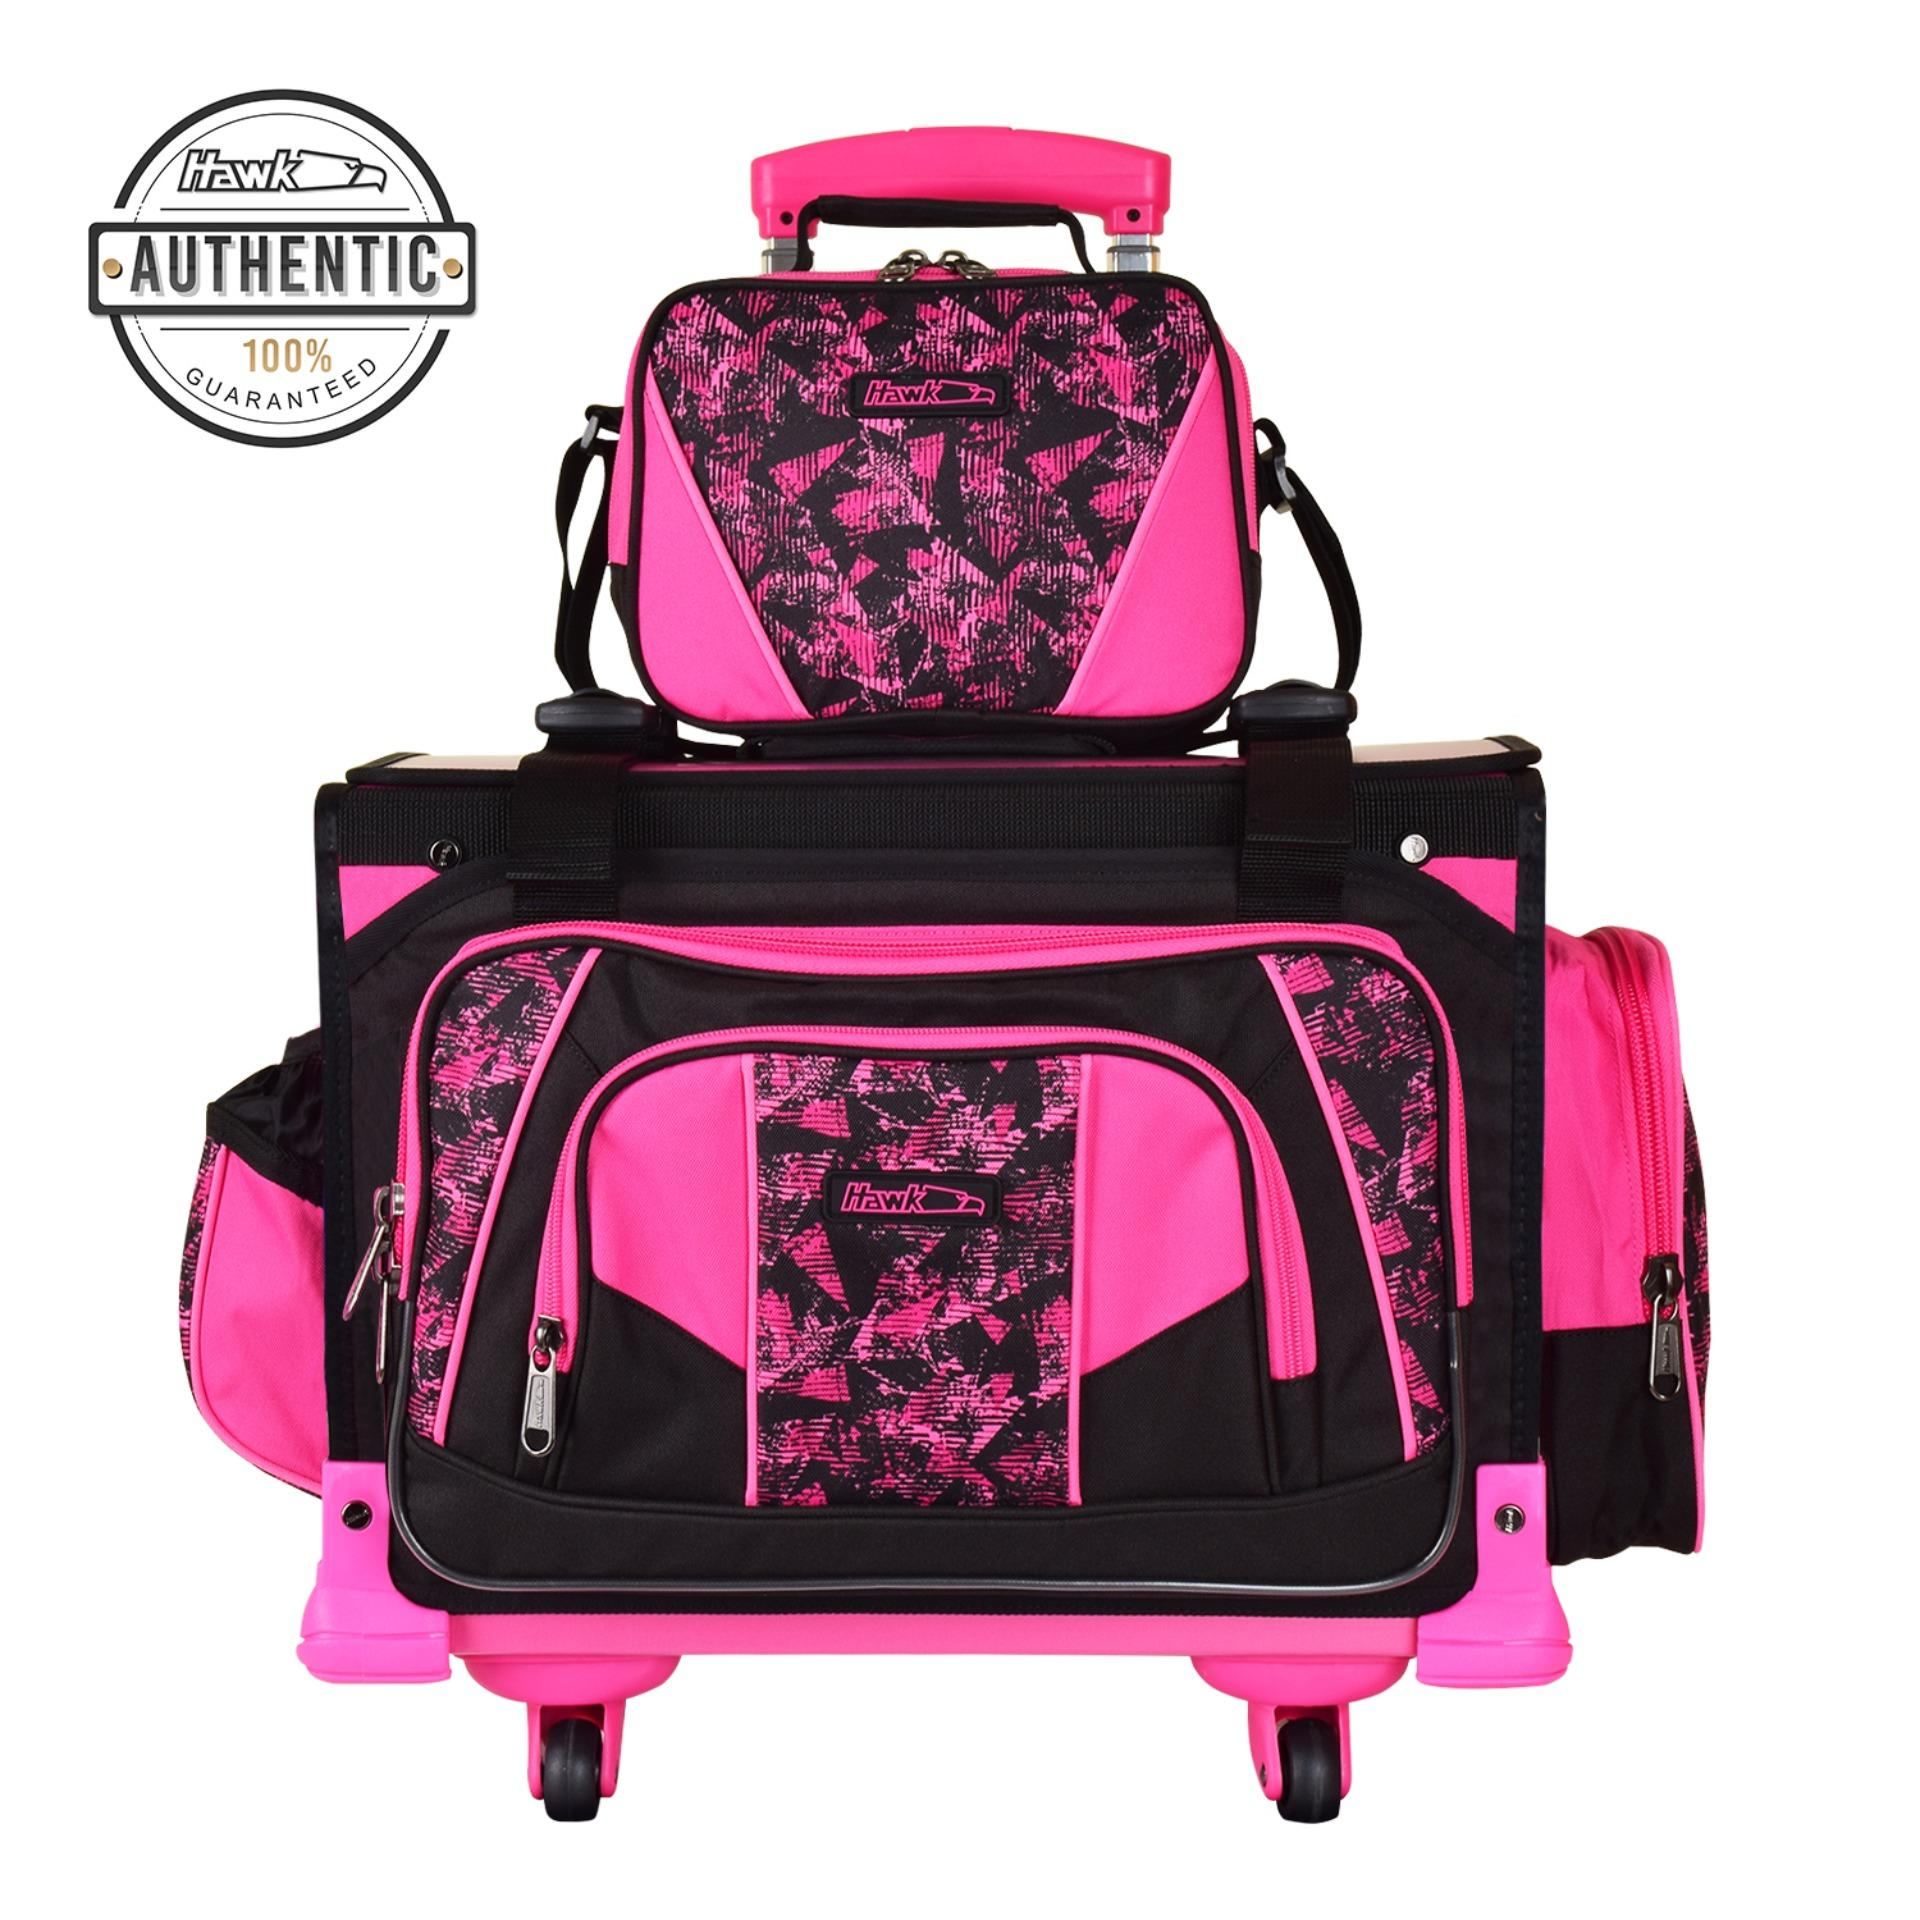 Luggage Bags for Kids for sale - Kids  Luggage online brands 6dc75edc38c41